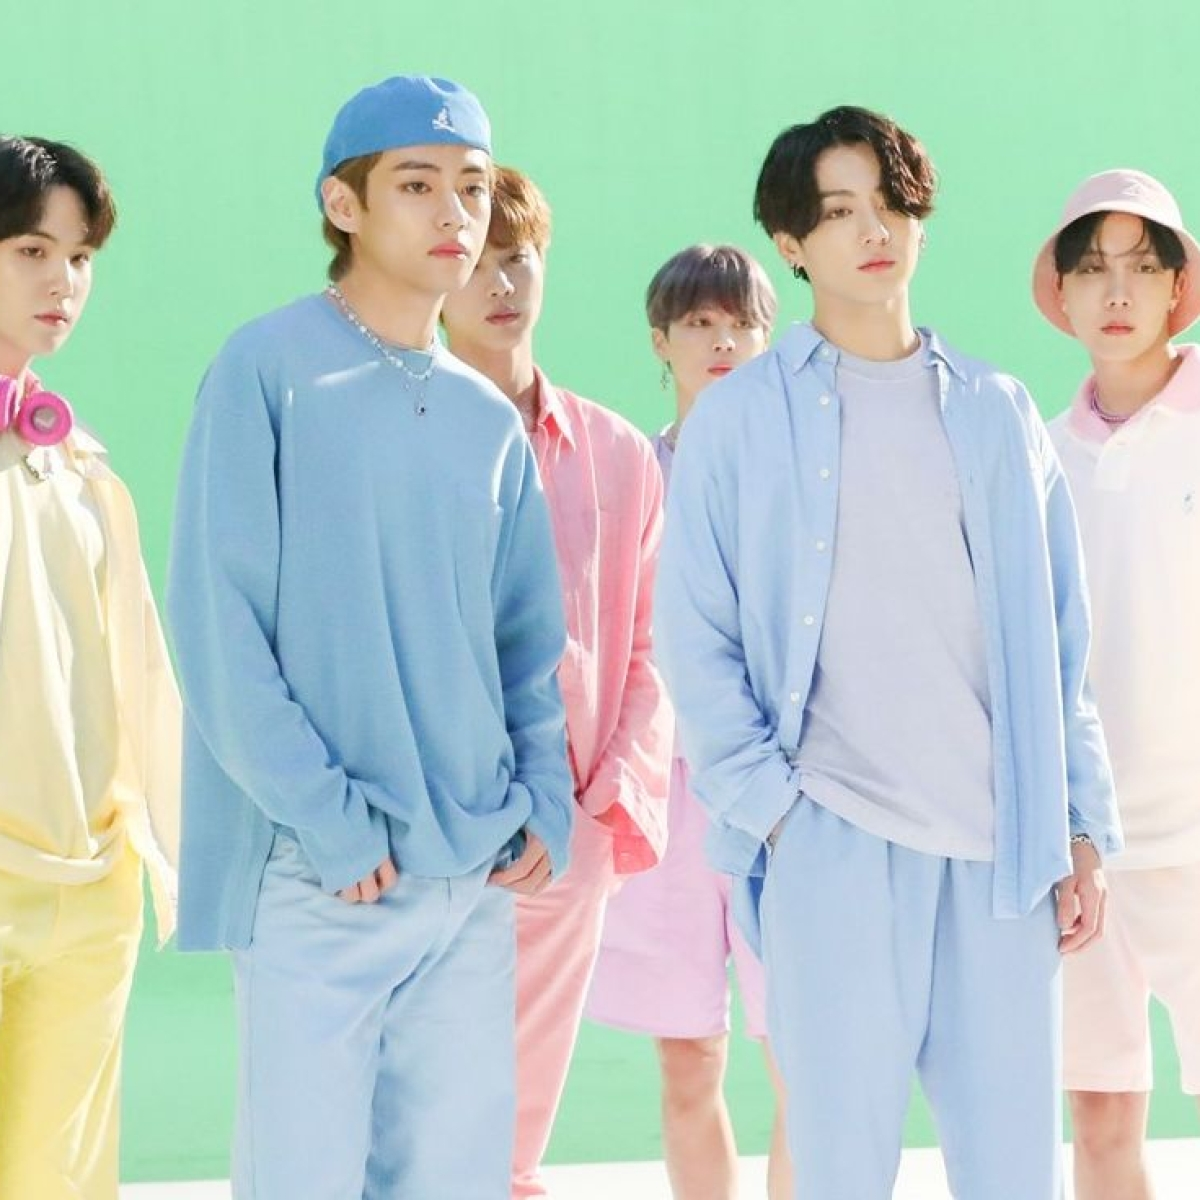 BTS 'Dynamite' costumes sold for a whopping Rs 1.18 crores to Japanese art collectors